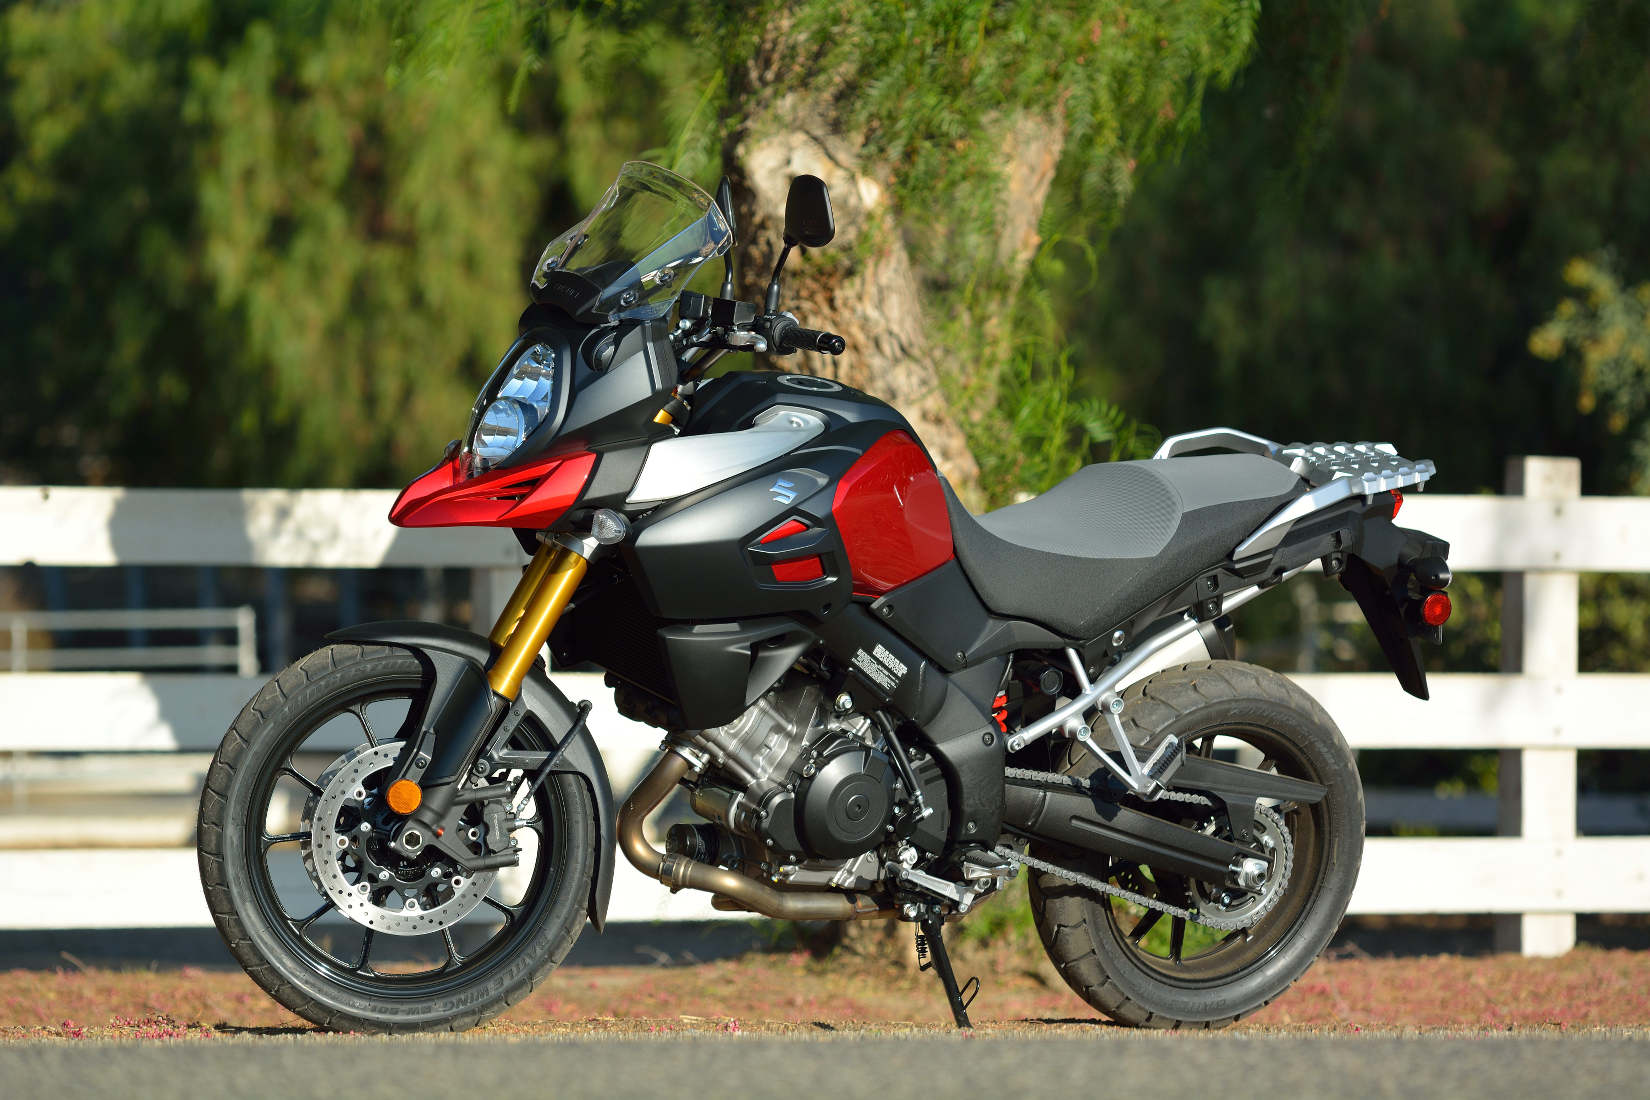 2014 suzuki v-strom 1000 abs: md long-term ride review